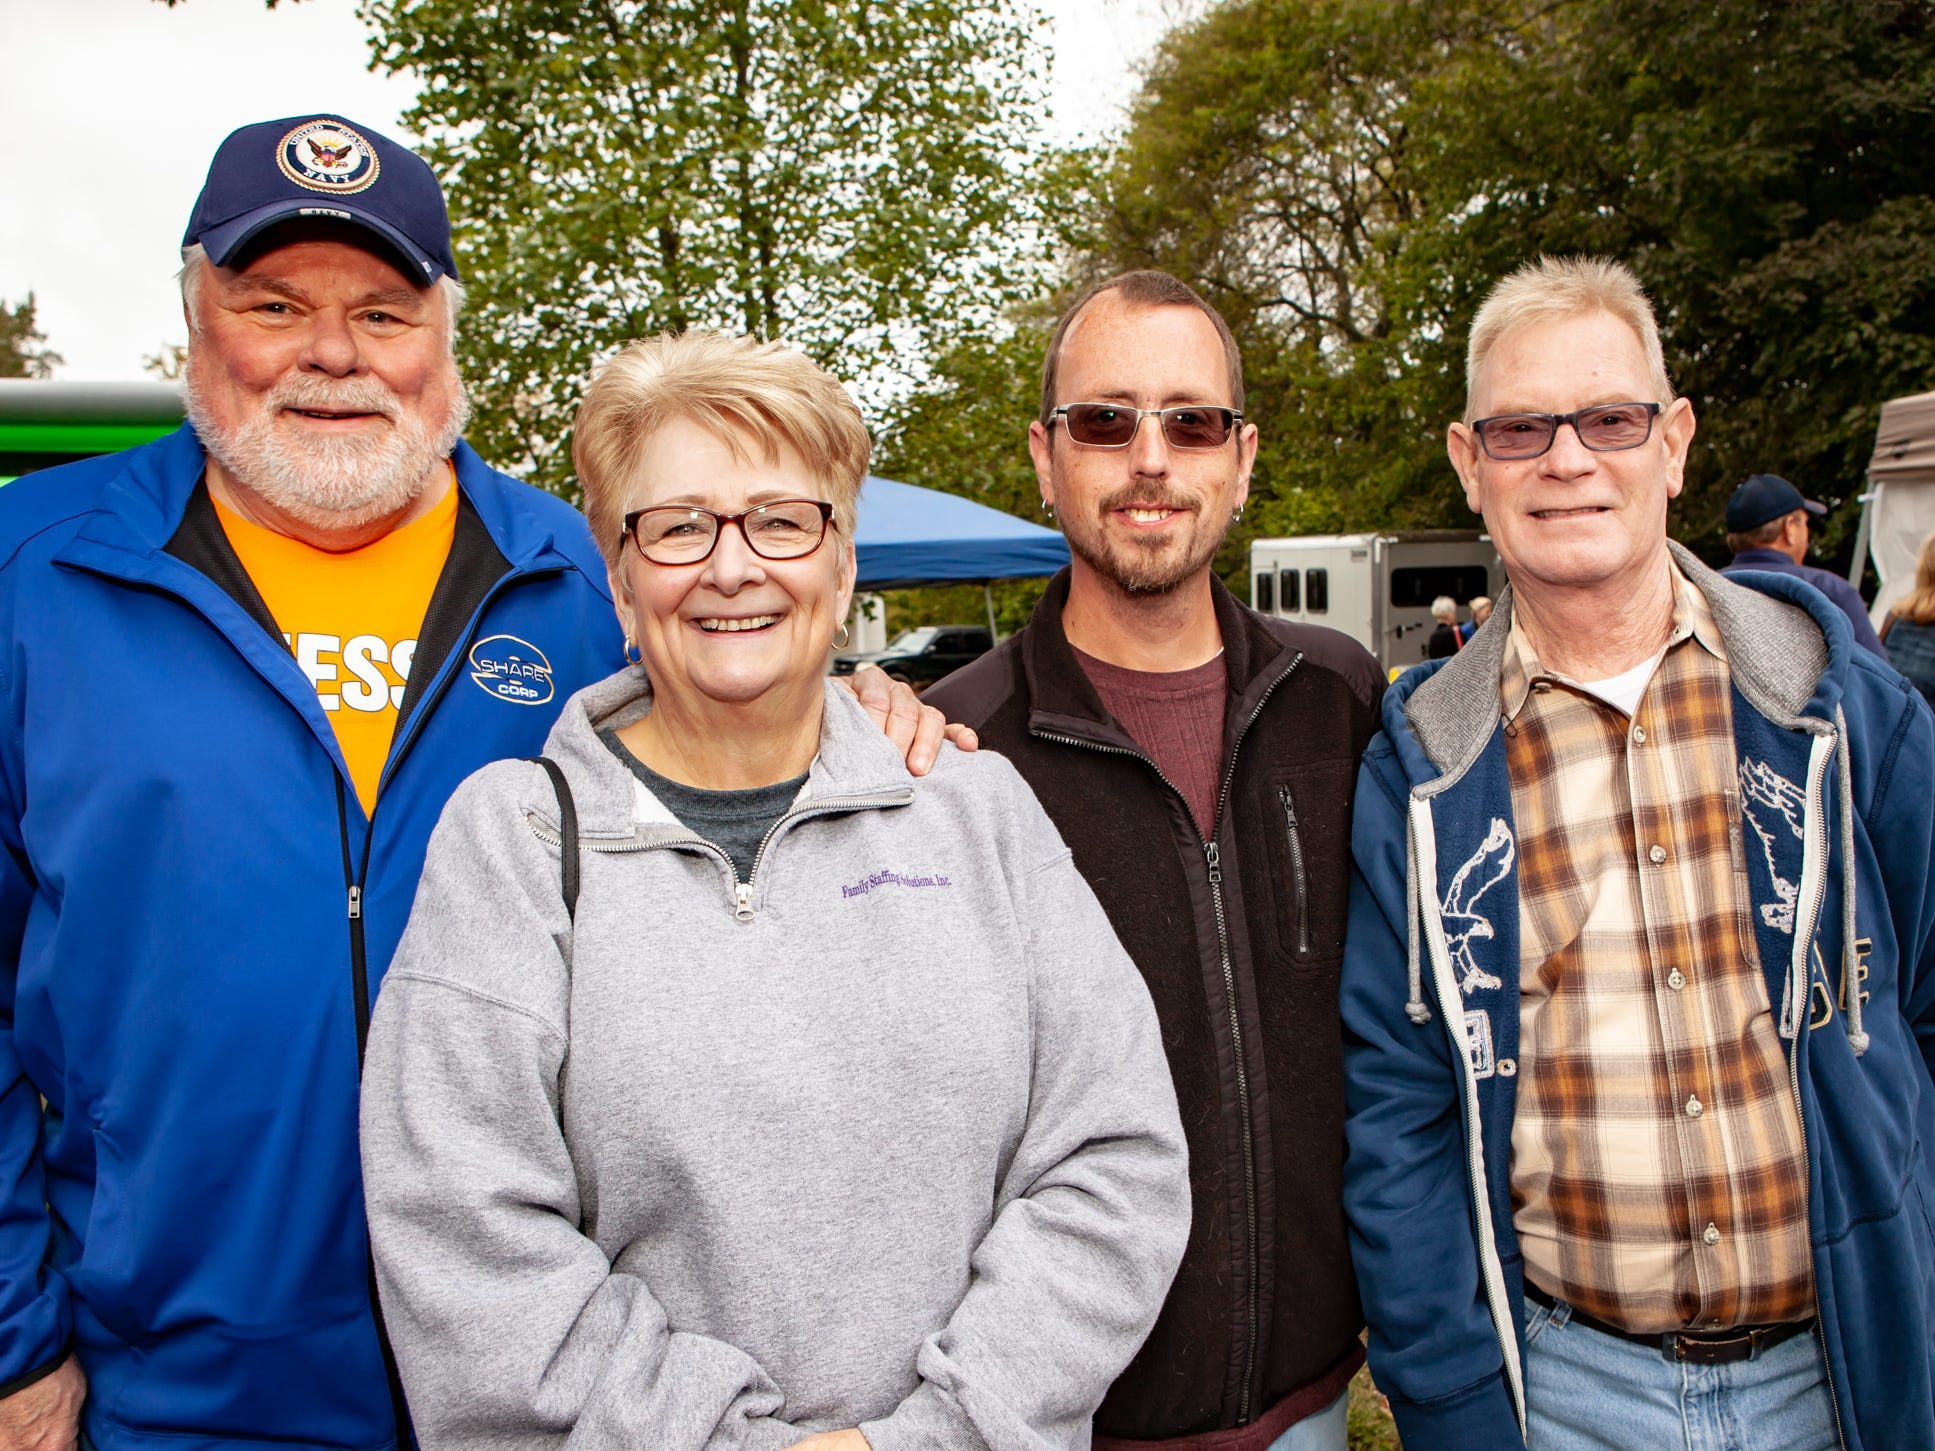 Rick and Cathy Bennett with Dale Maxwell and Don Sivells at The Gathering at Milton's fall market and craft fair on Saturday, Oct. 13, 2018.